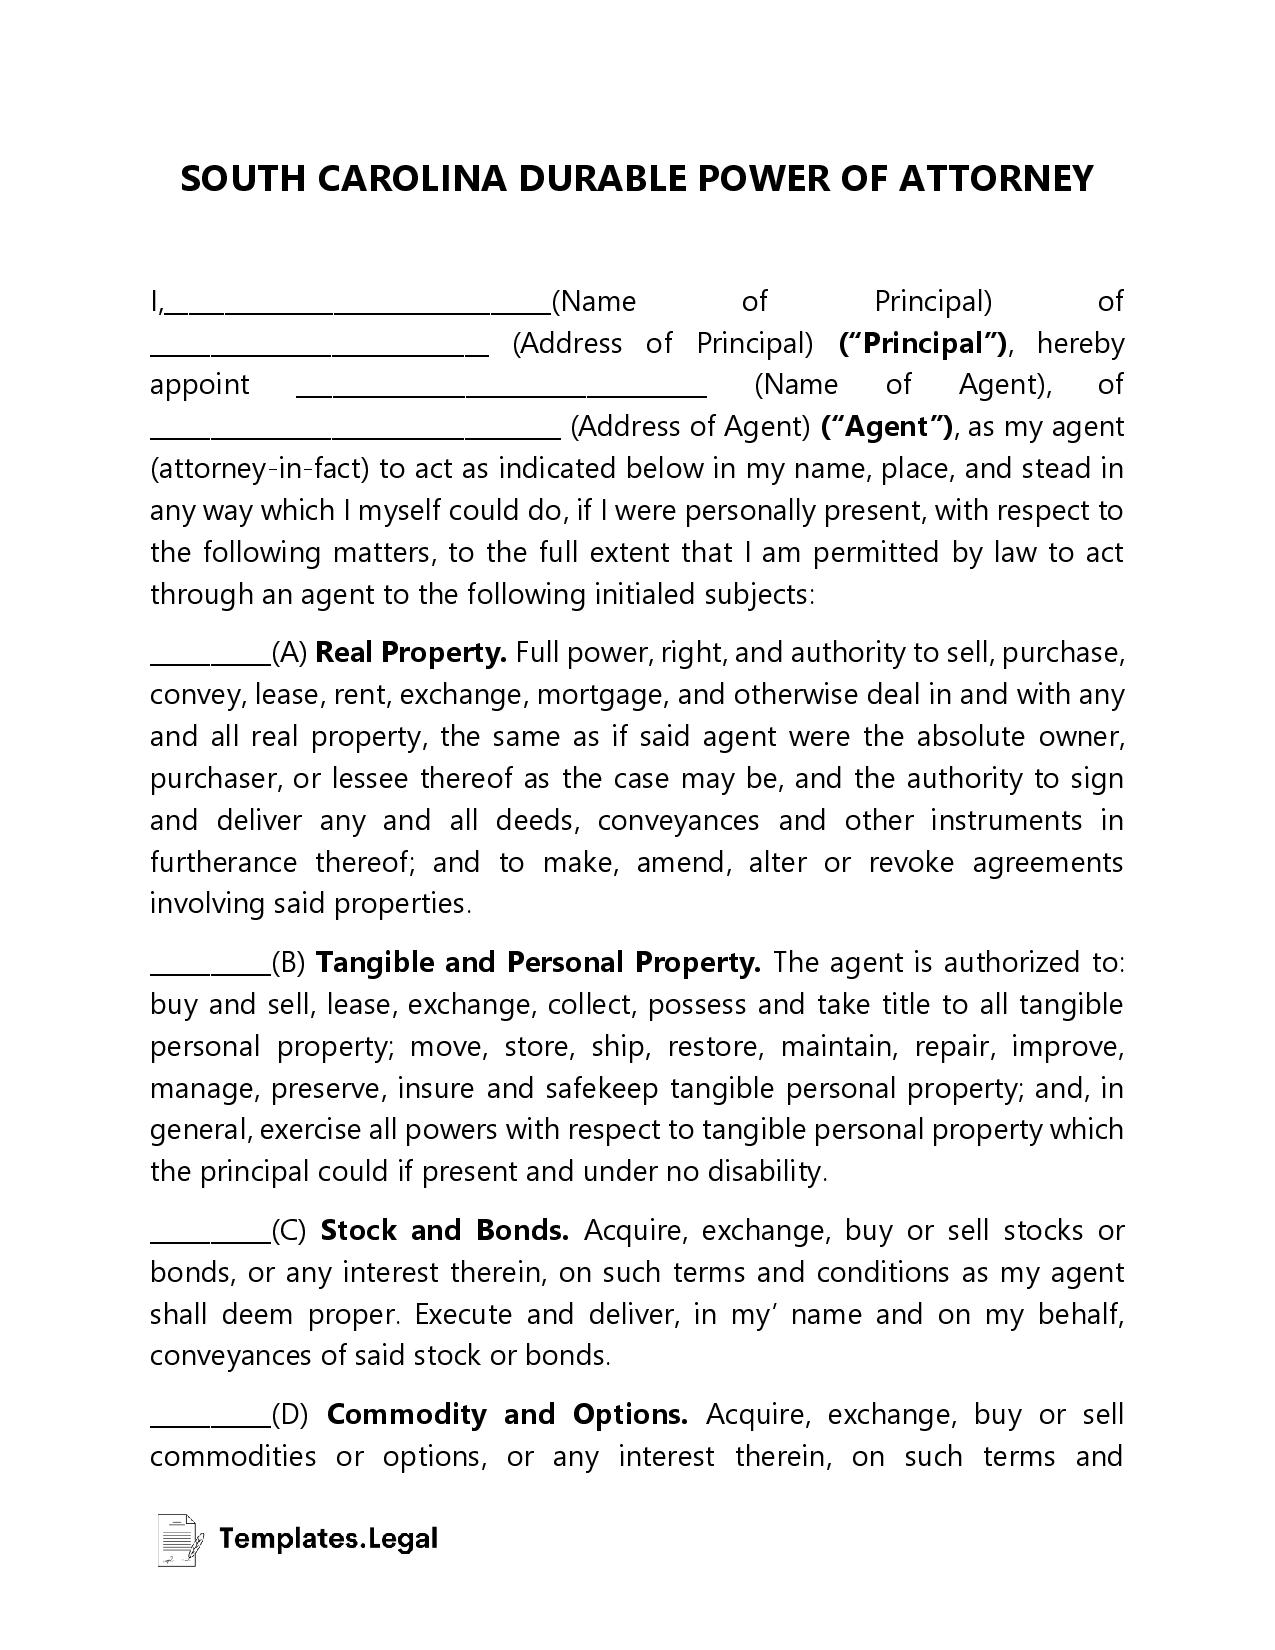 South Carolina Durable Power of Attorney - Templates.Legal